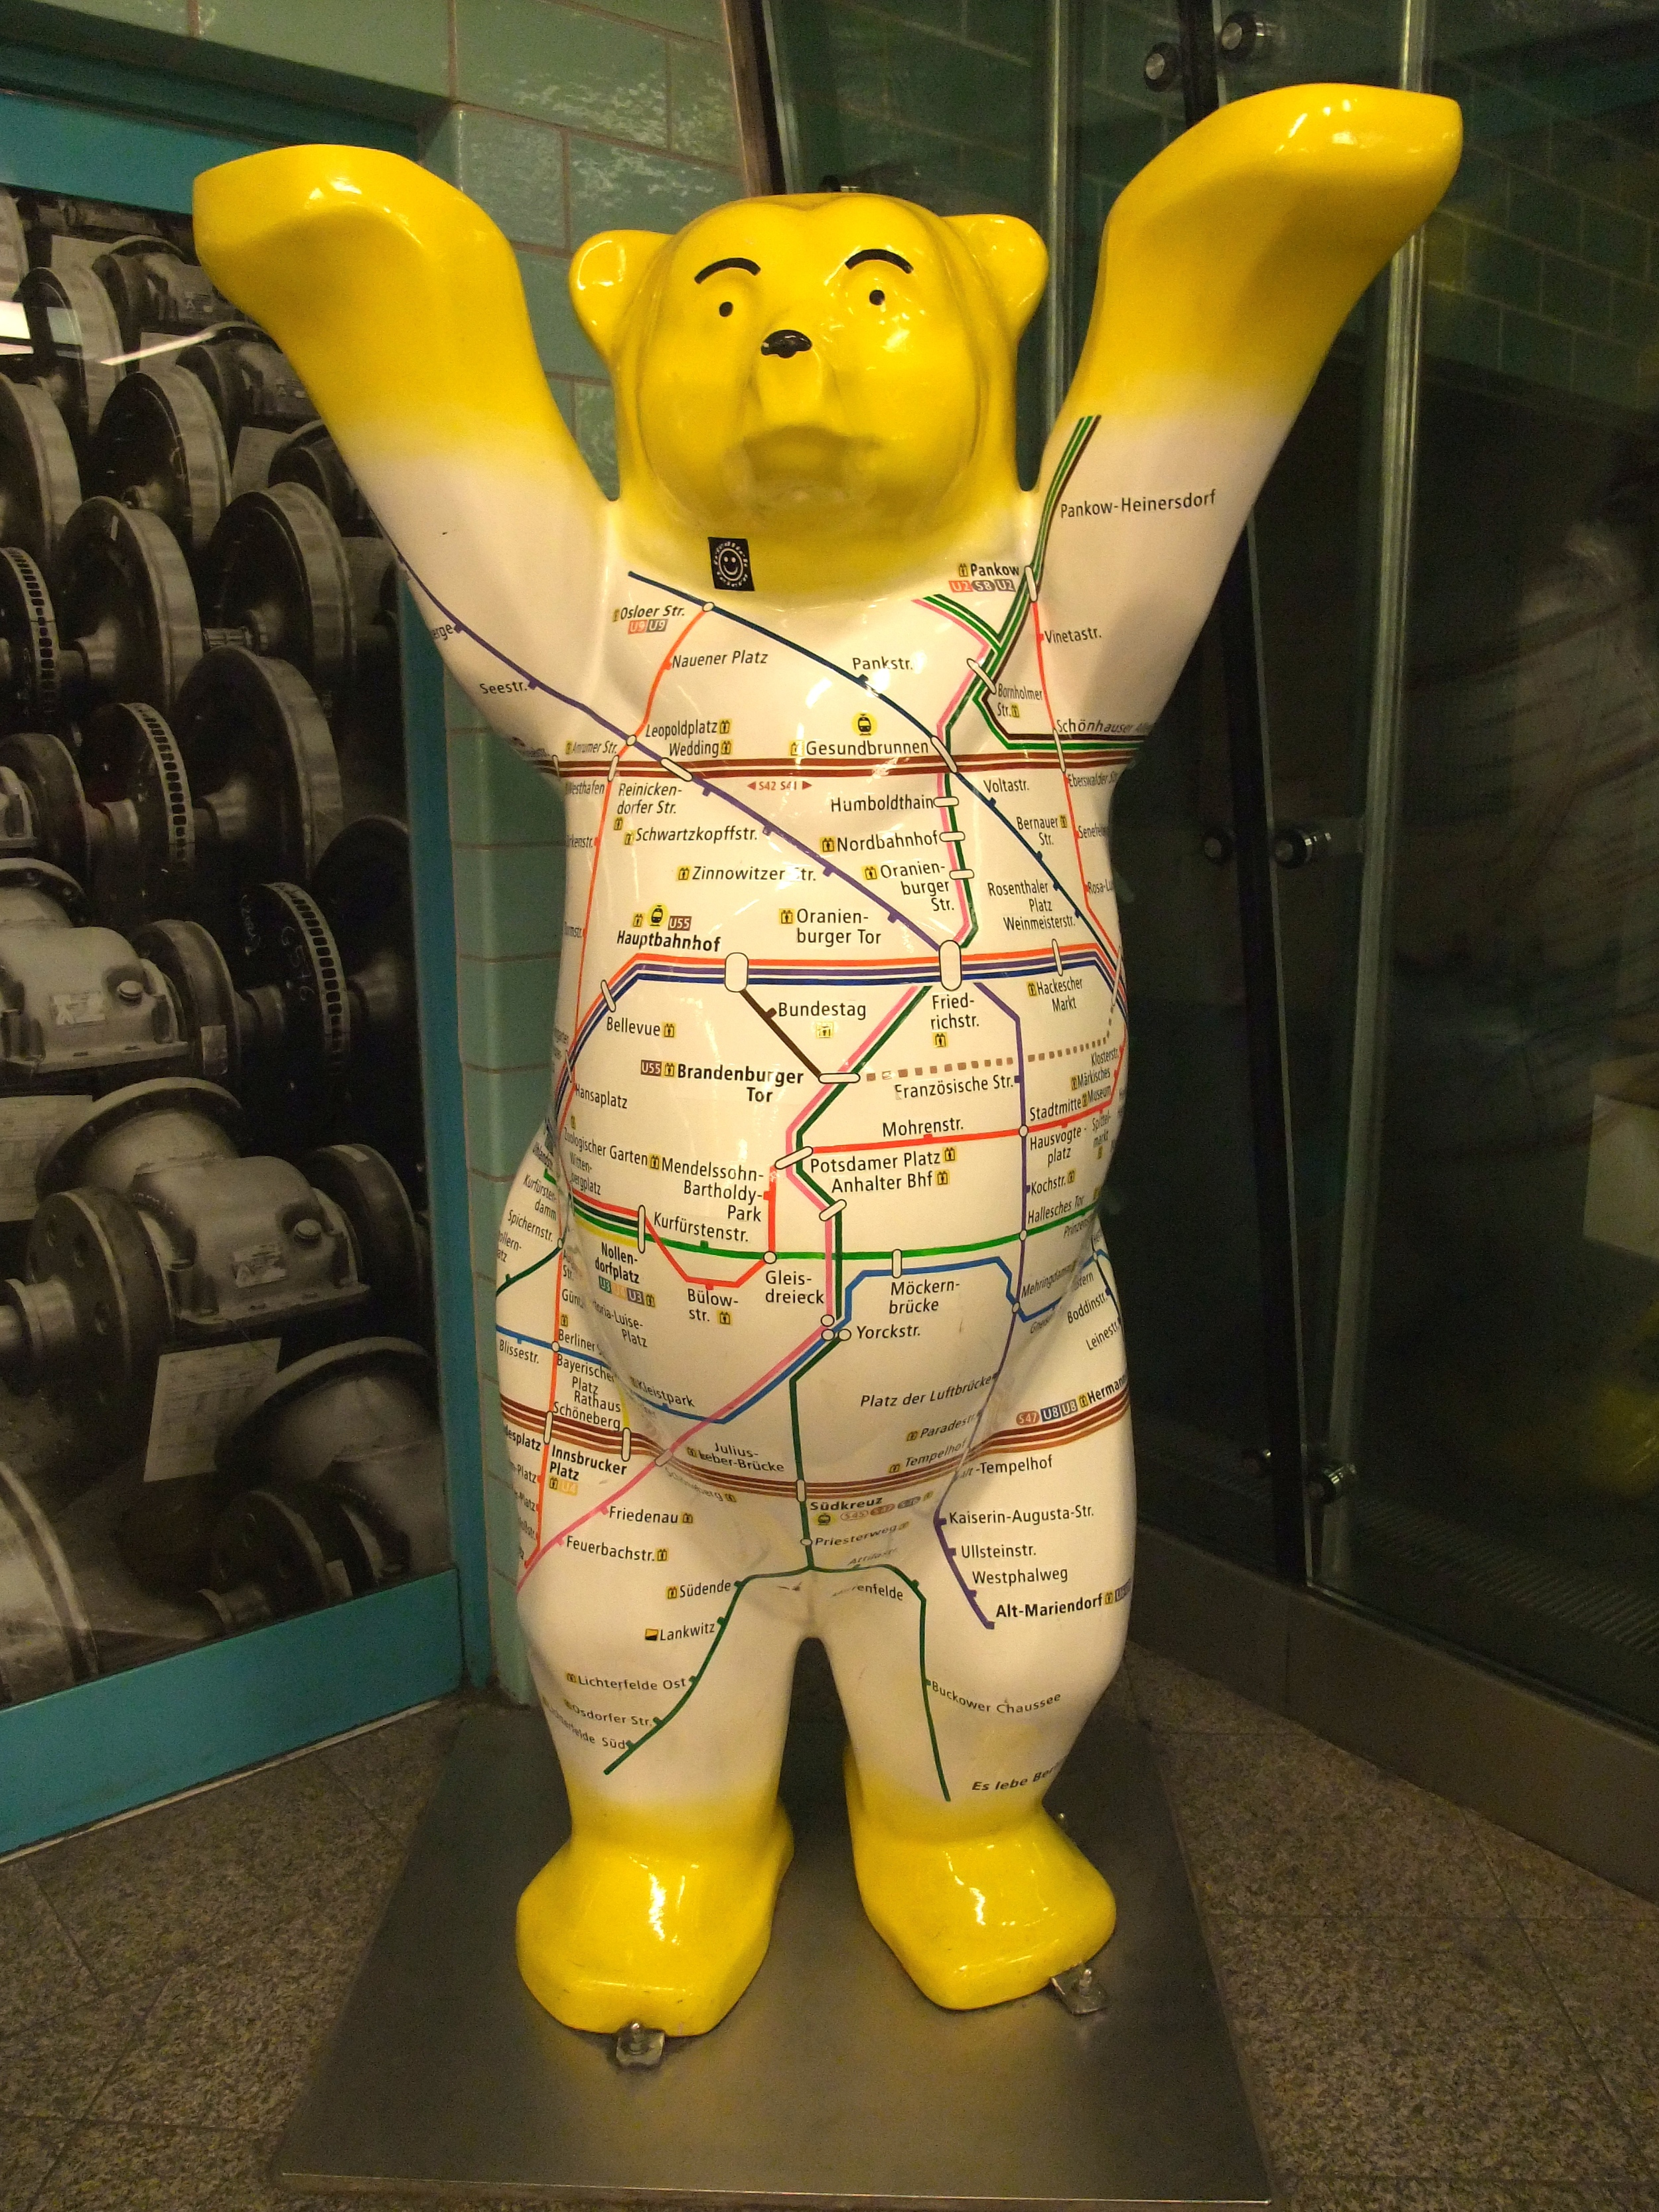 One of the iconic Berlin bears with a subway map on his body